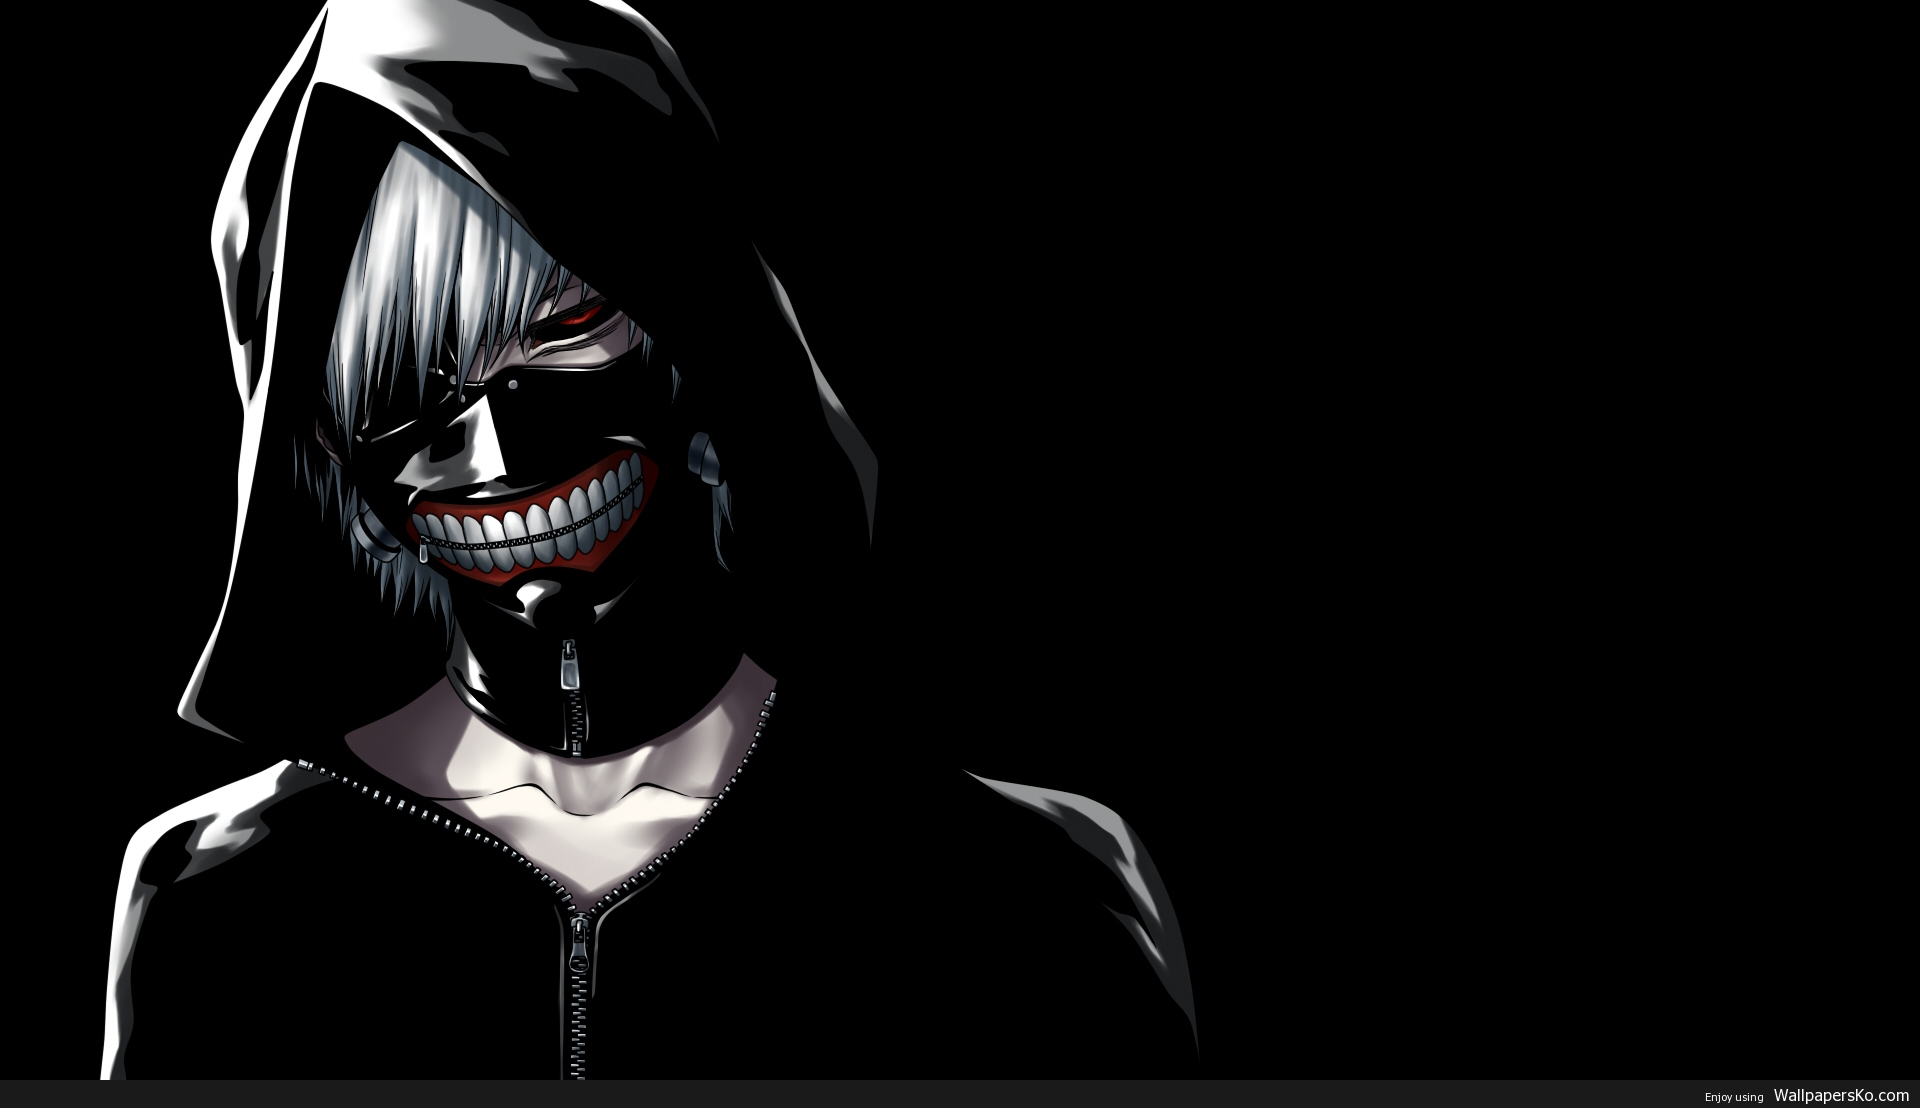 Tokyo Ghoul Wallpaper Hd Hd Wallpapers Download